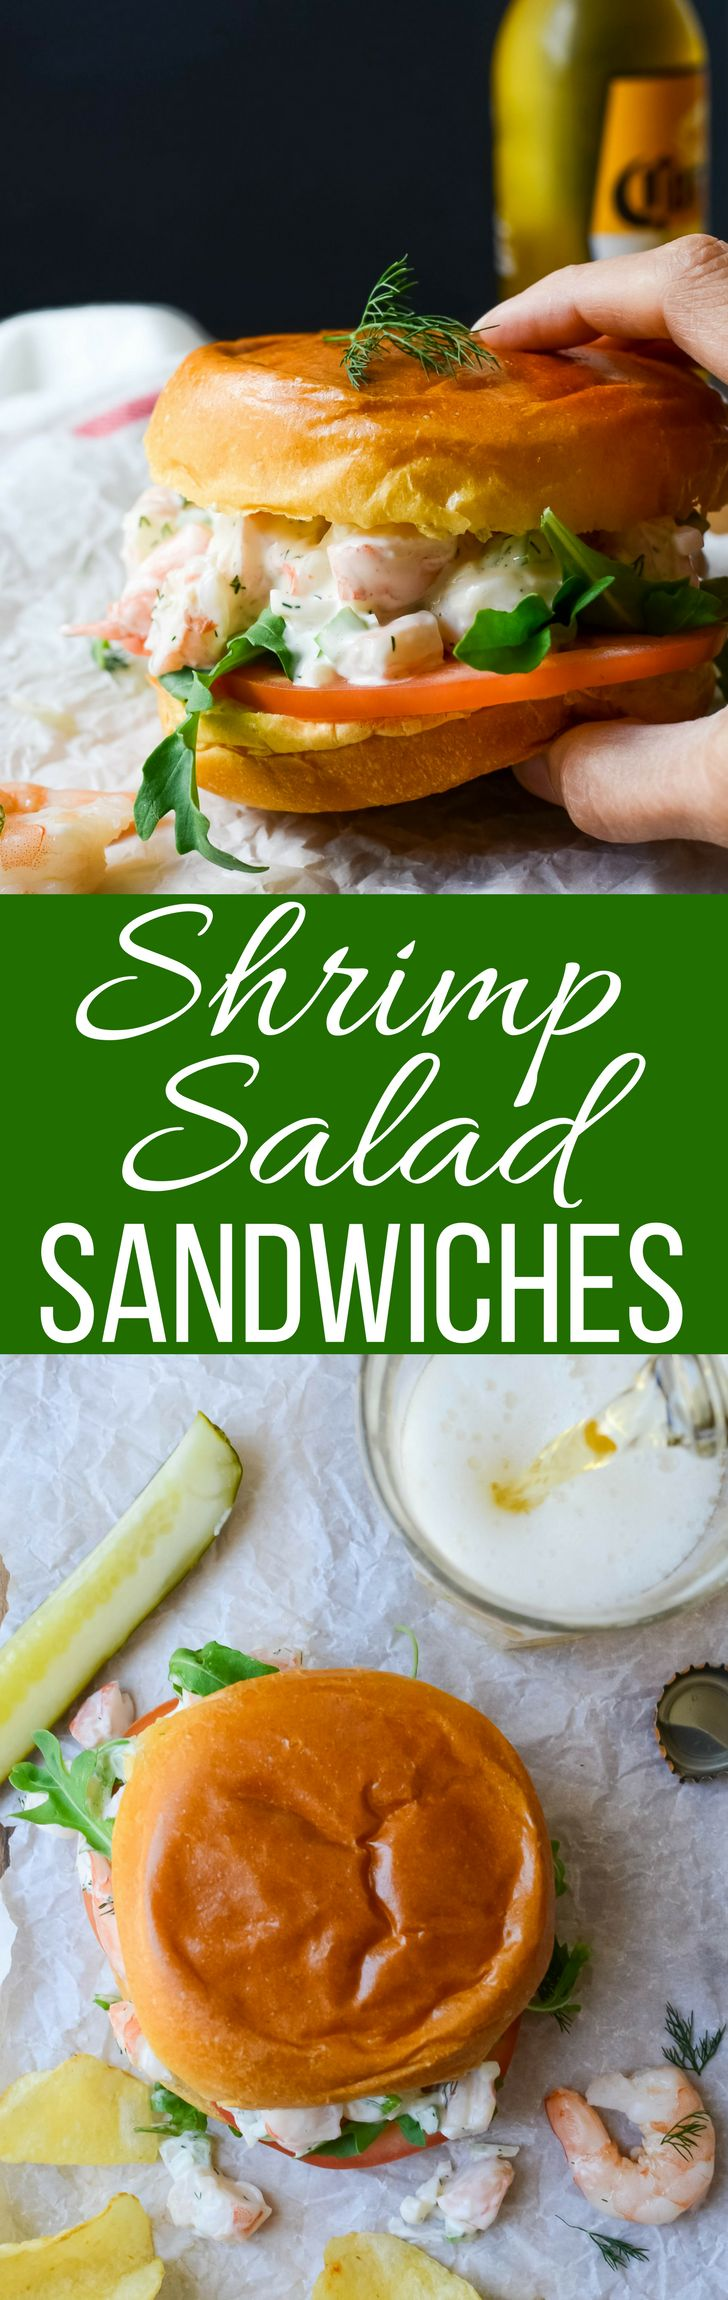 This easy shrimp salad sandwich recipe with dill, lemon and hot sauce is like summer on a bun!